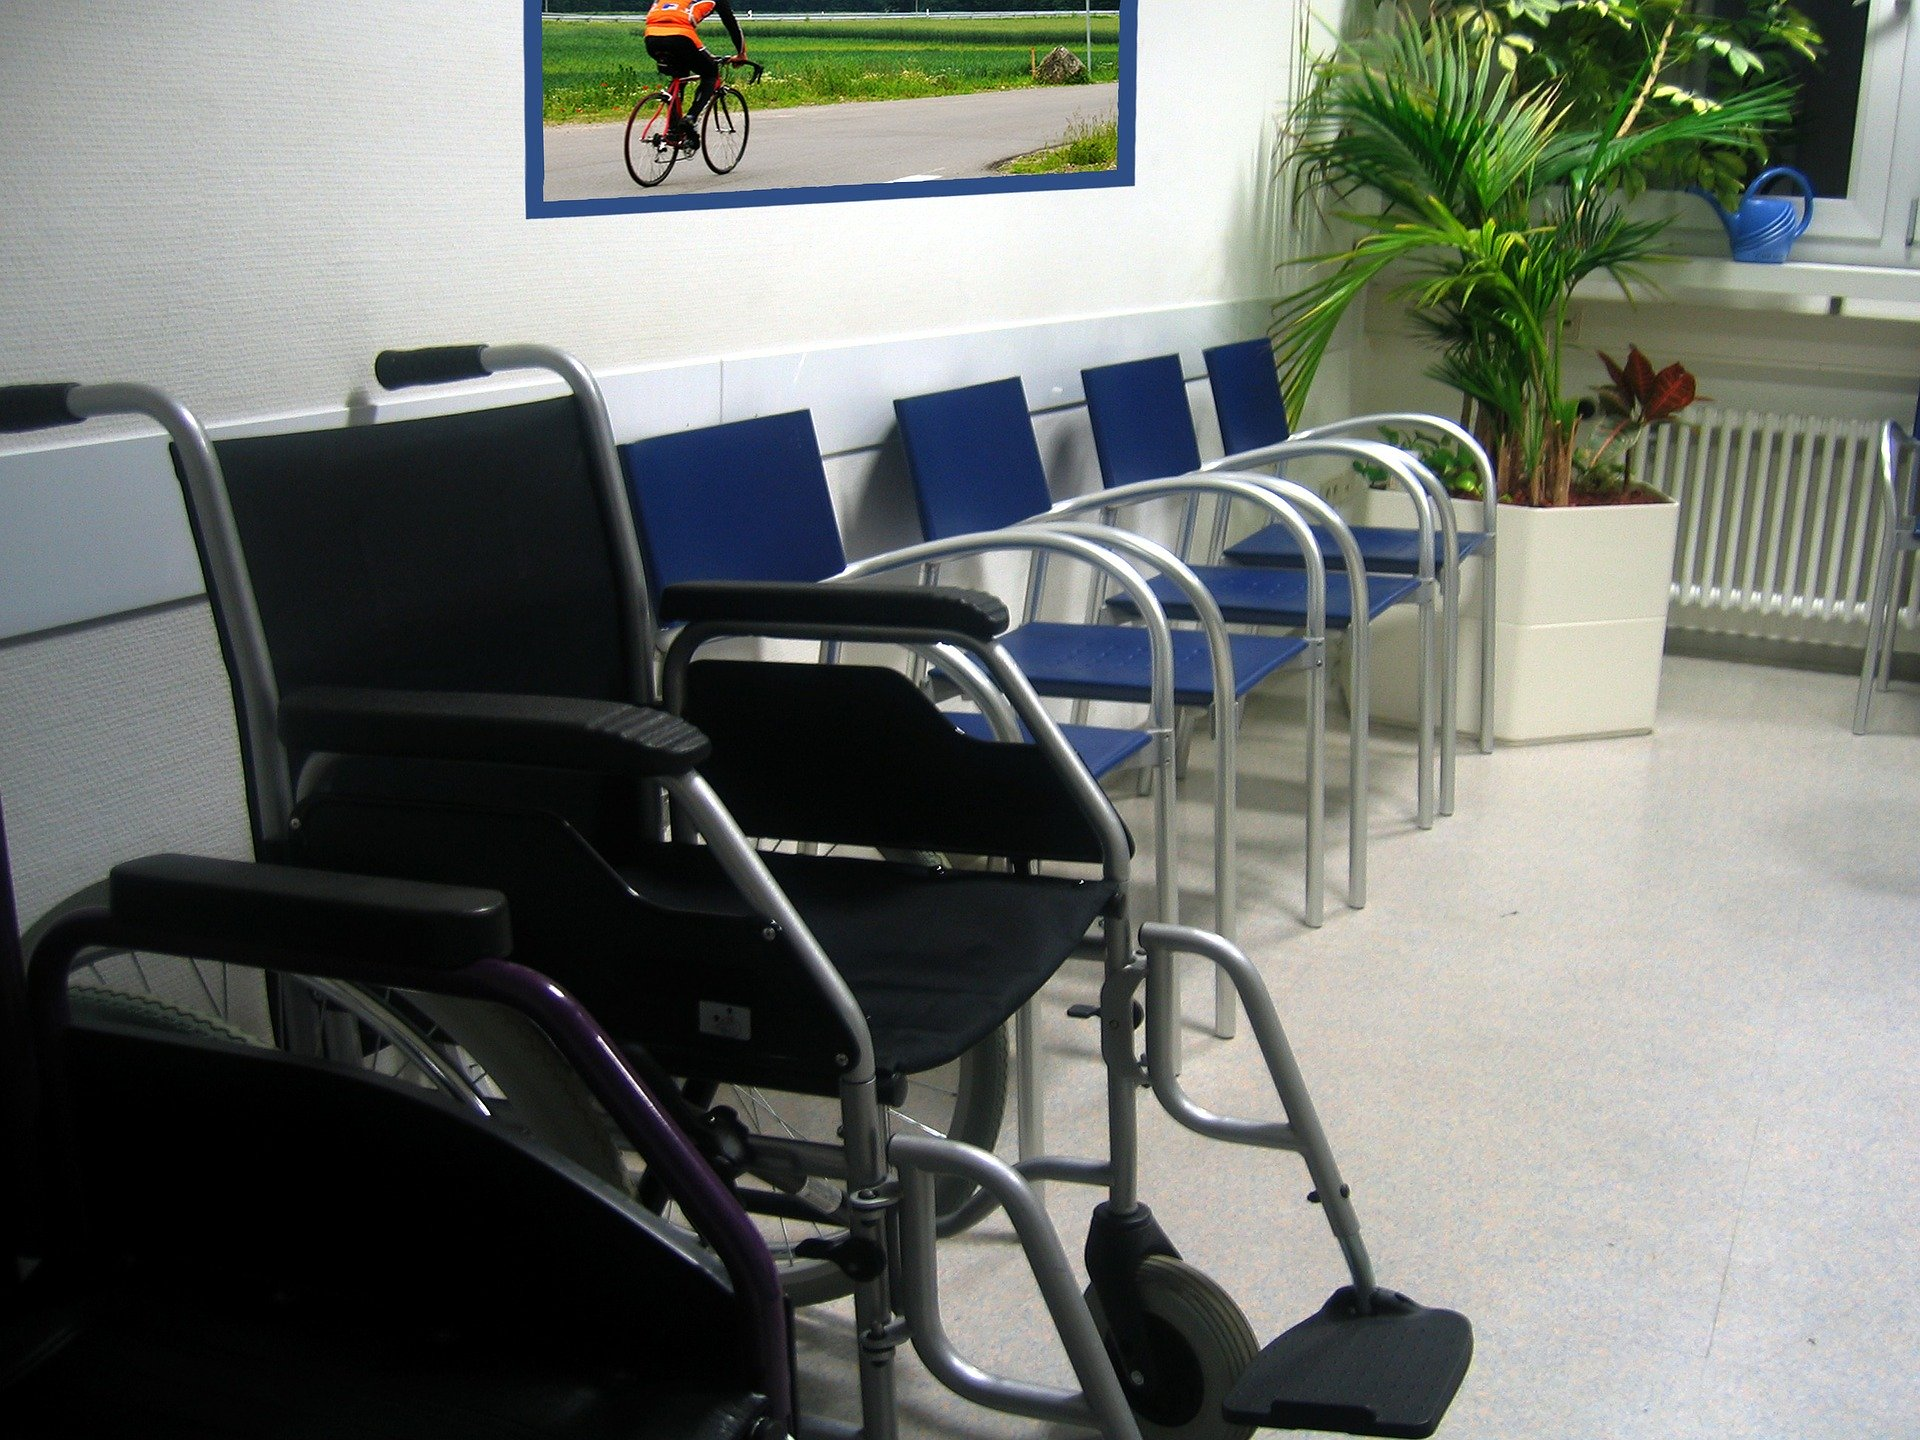 Healthcentre waiting room with blue plastic chairs and wheelchairs